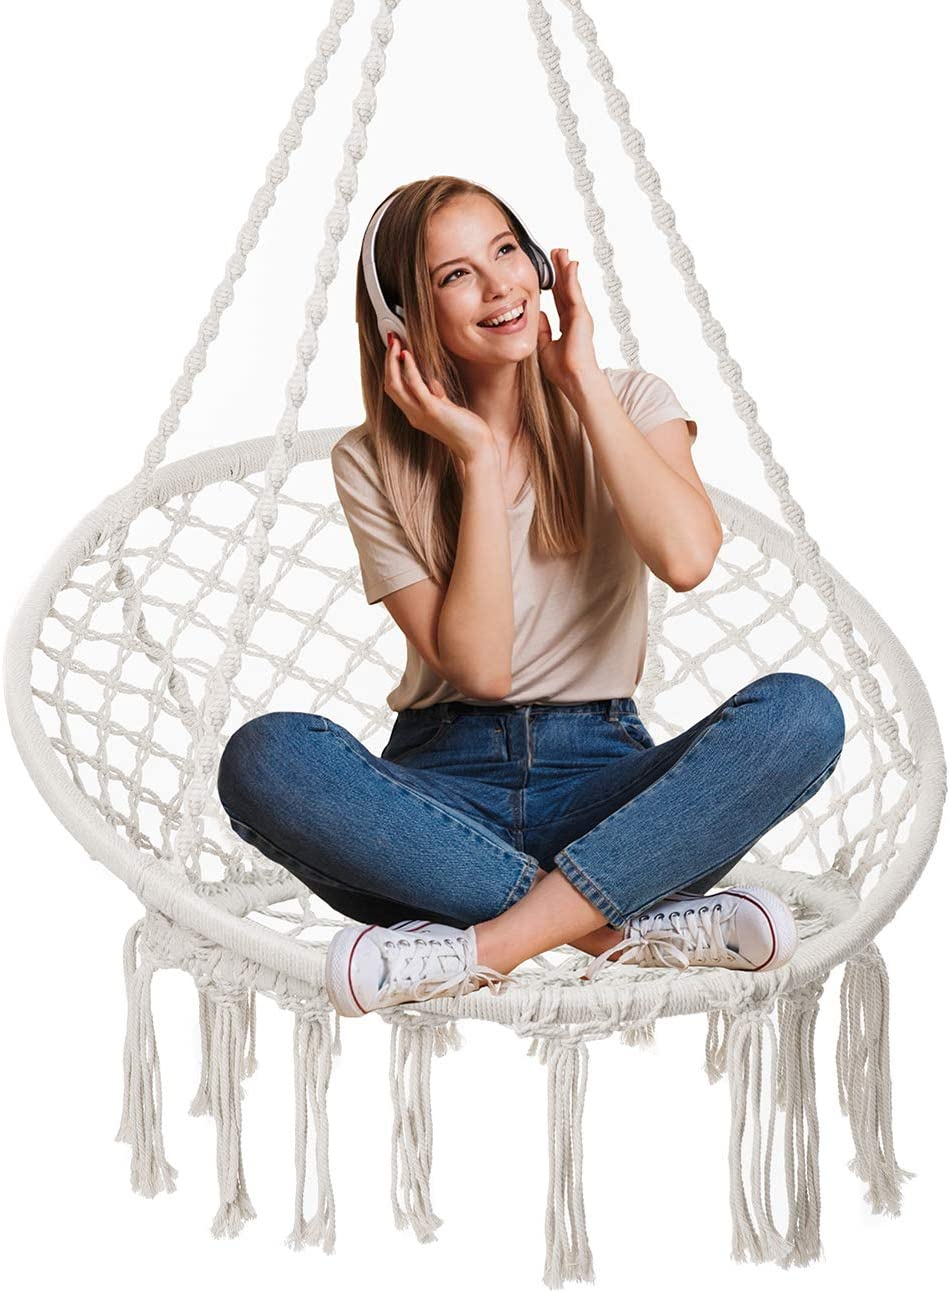 Showpin Hammock Chair Macrame Swing 330 Pound Capacity Handmade Hanging Swing Chair Prefect for Indoor Outdoor Home Patio Deck Yard Garden Reading Leisure Cream